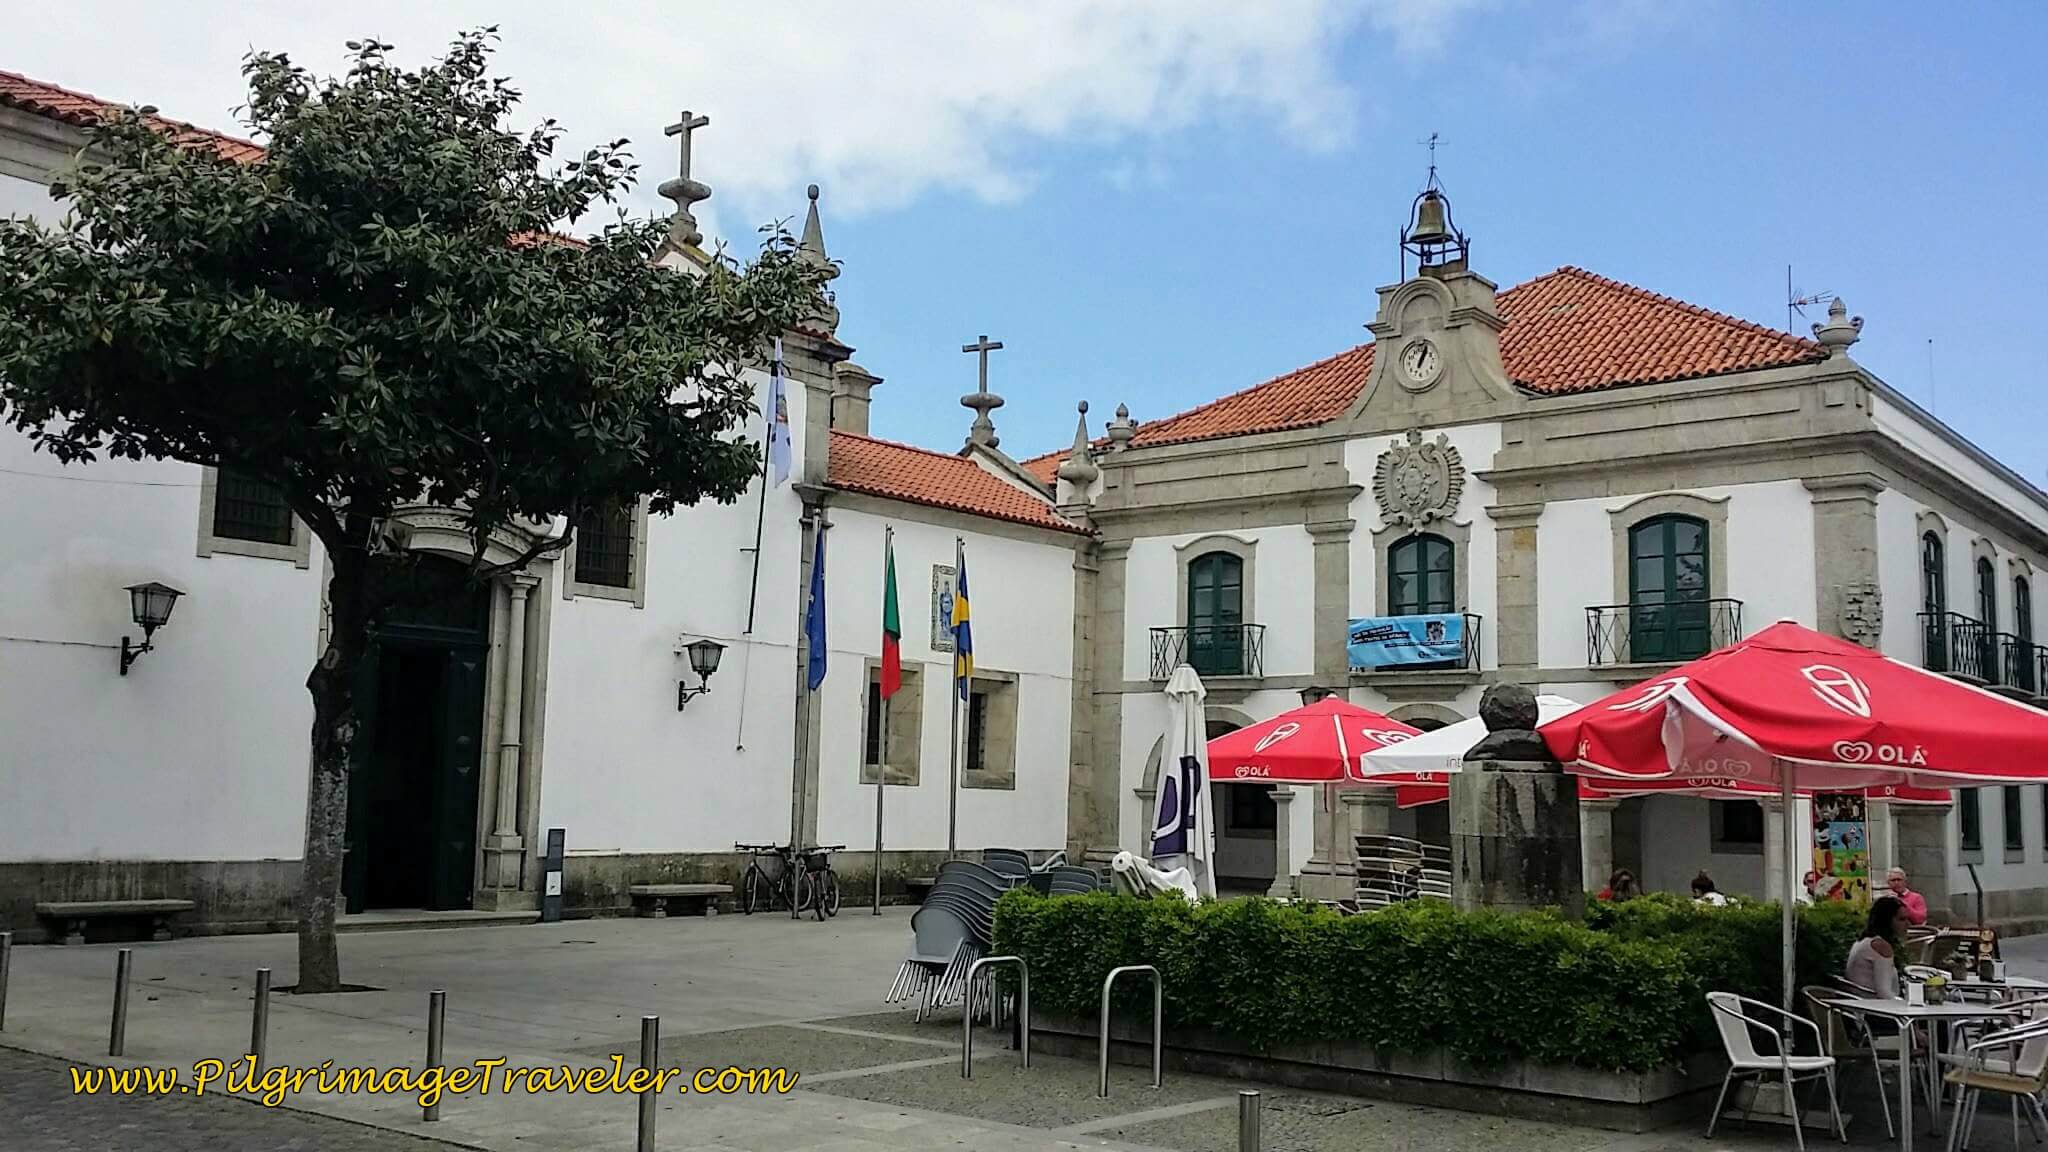 The Igreja da Misericórdia and Câmara Municipal de Esposende, in the Town Square on day sixteen of the Portuguese Way on the Coastal Route